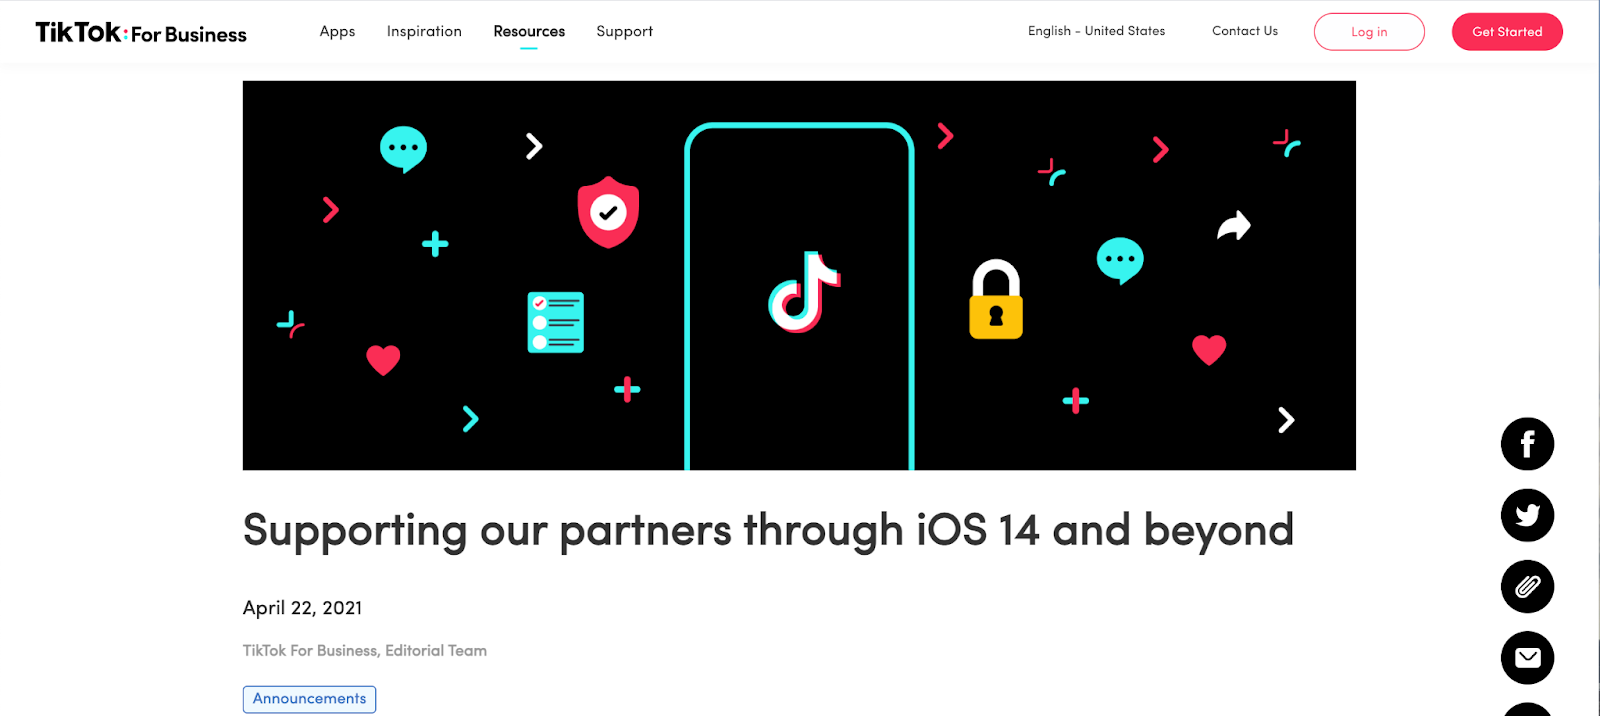 TikTok promises to support their partners as things are changing